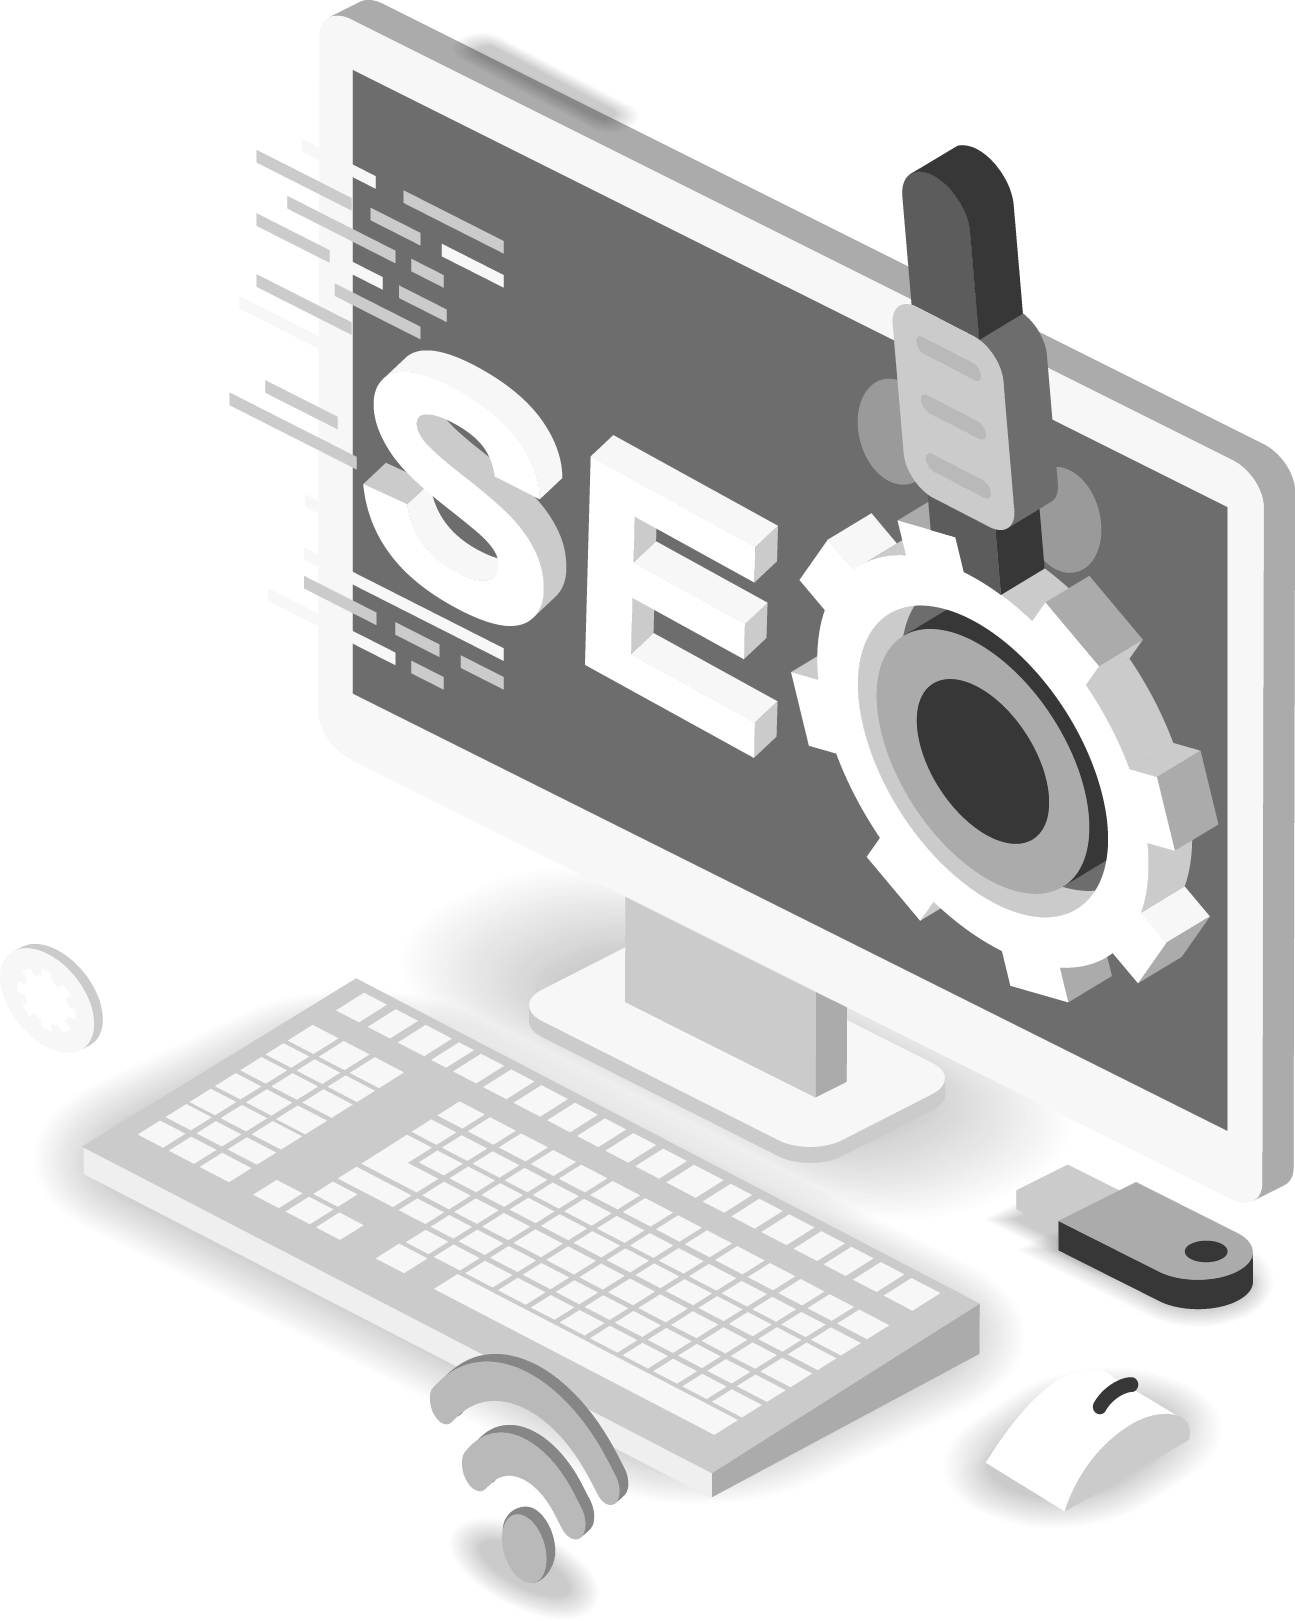 Local Pest Control SEO Plan For Organic Growth